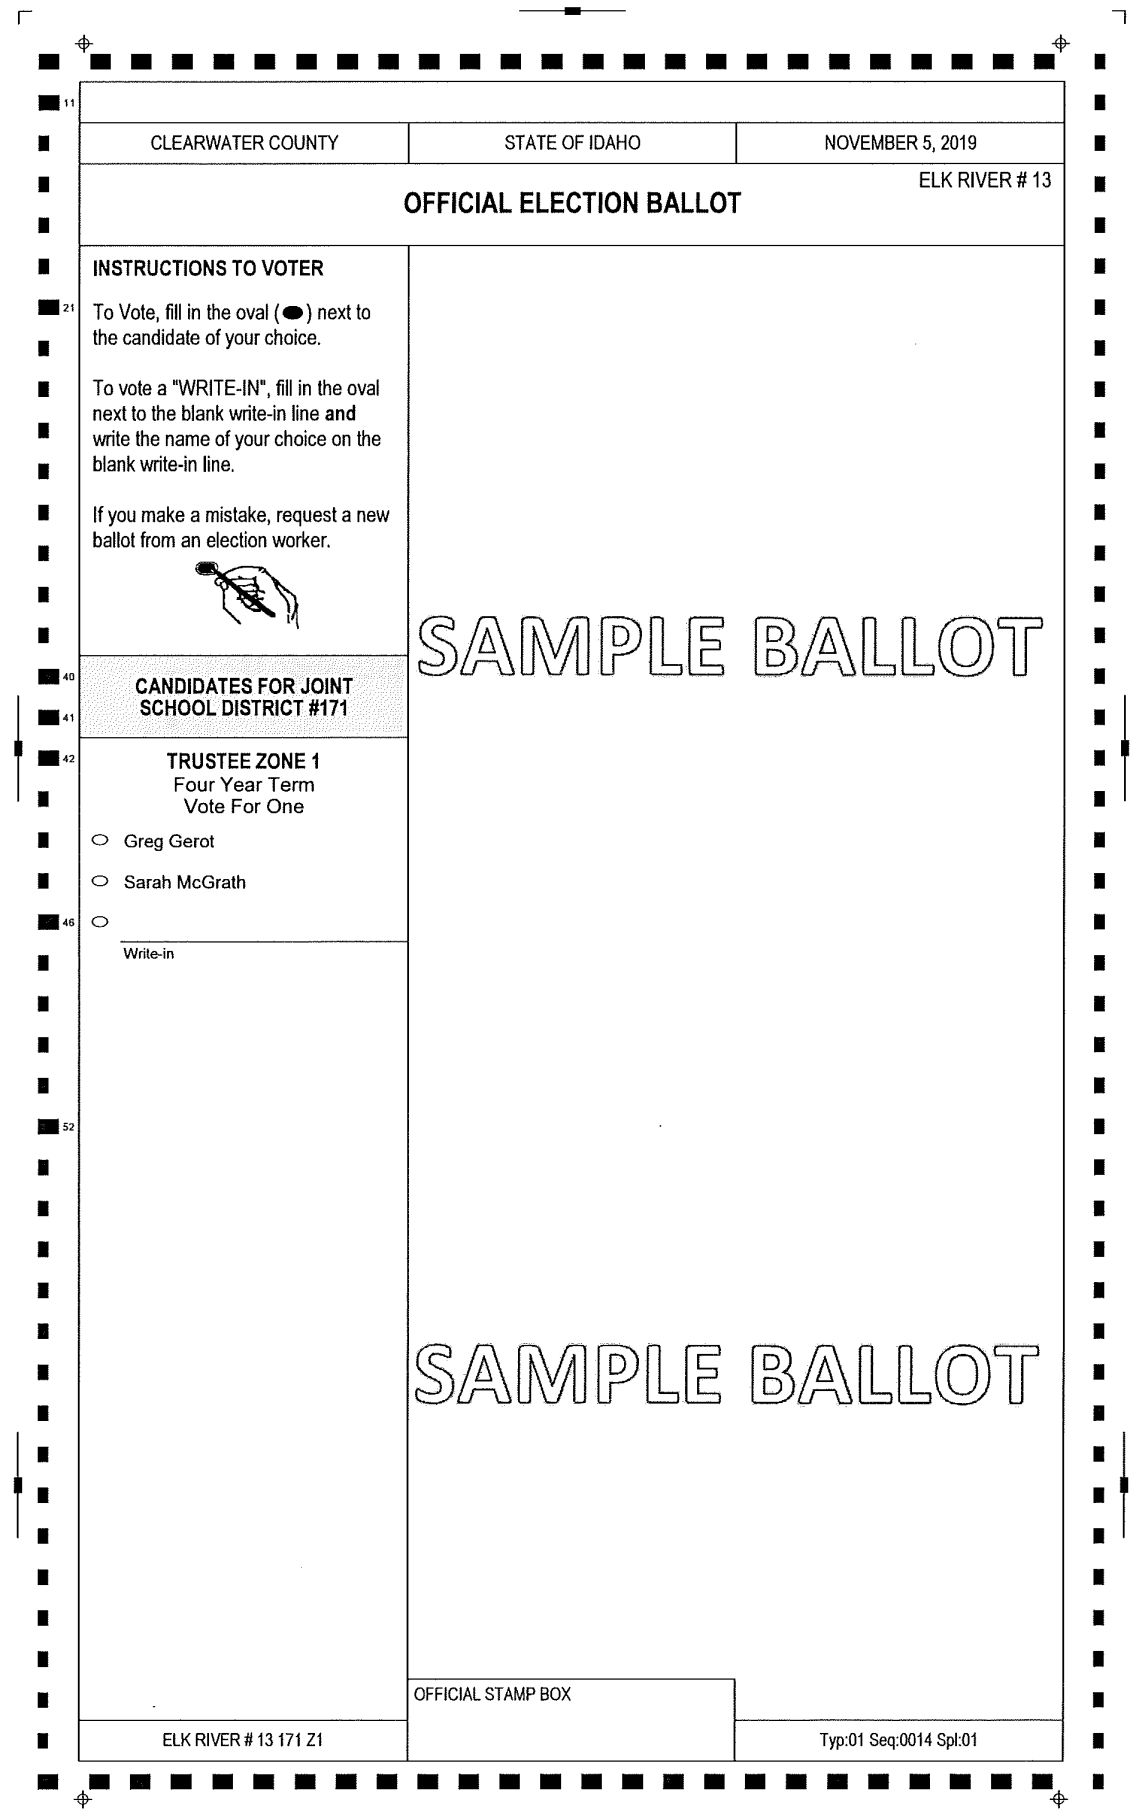 Sample Ballot Clearwater County Nov 2019-2